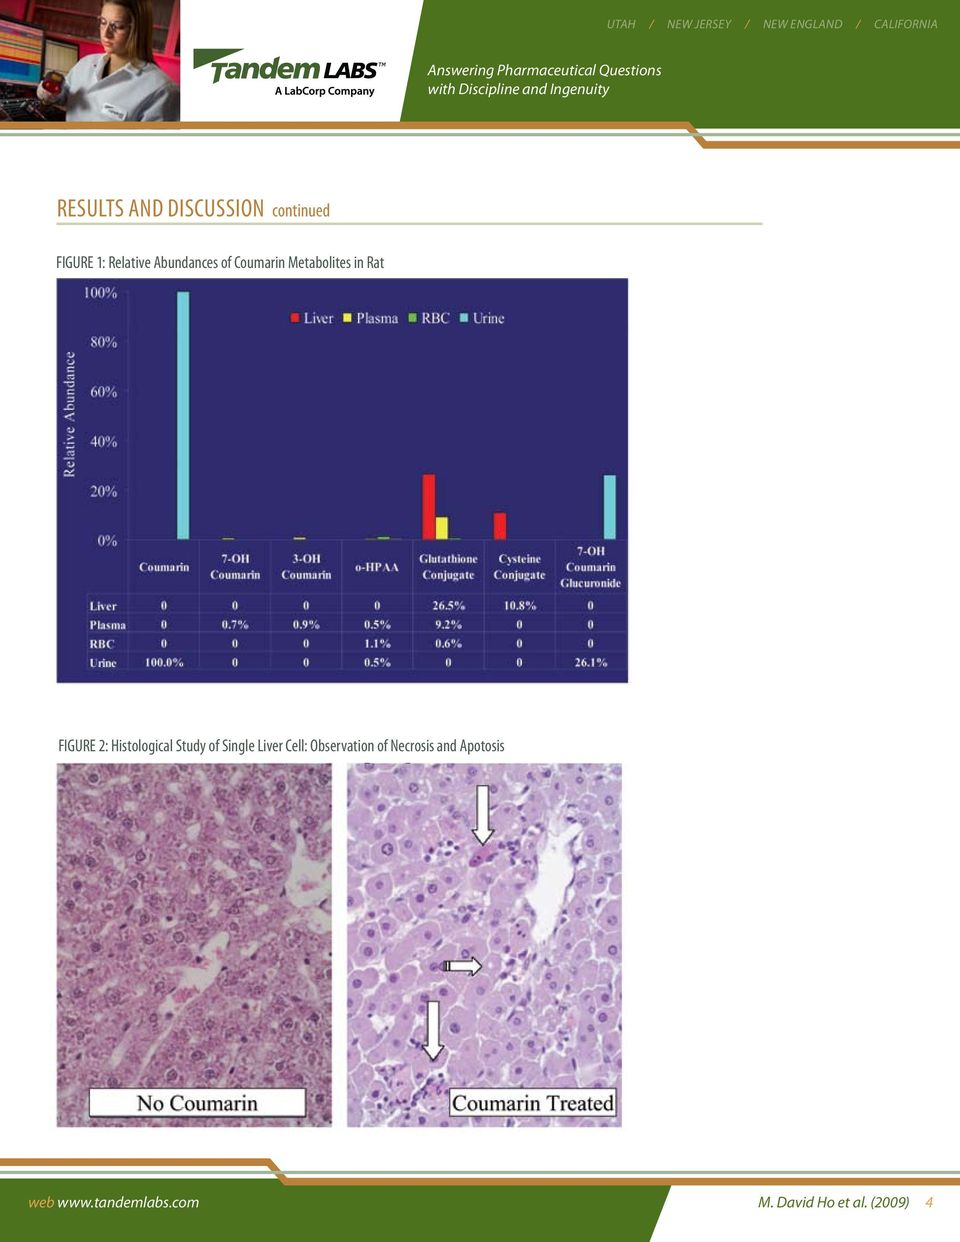 Study of Single Liver Cell: Observation of